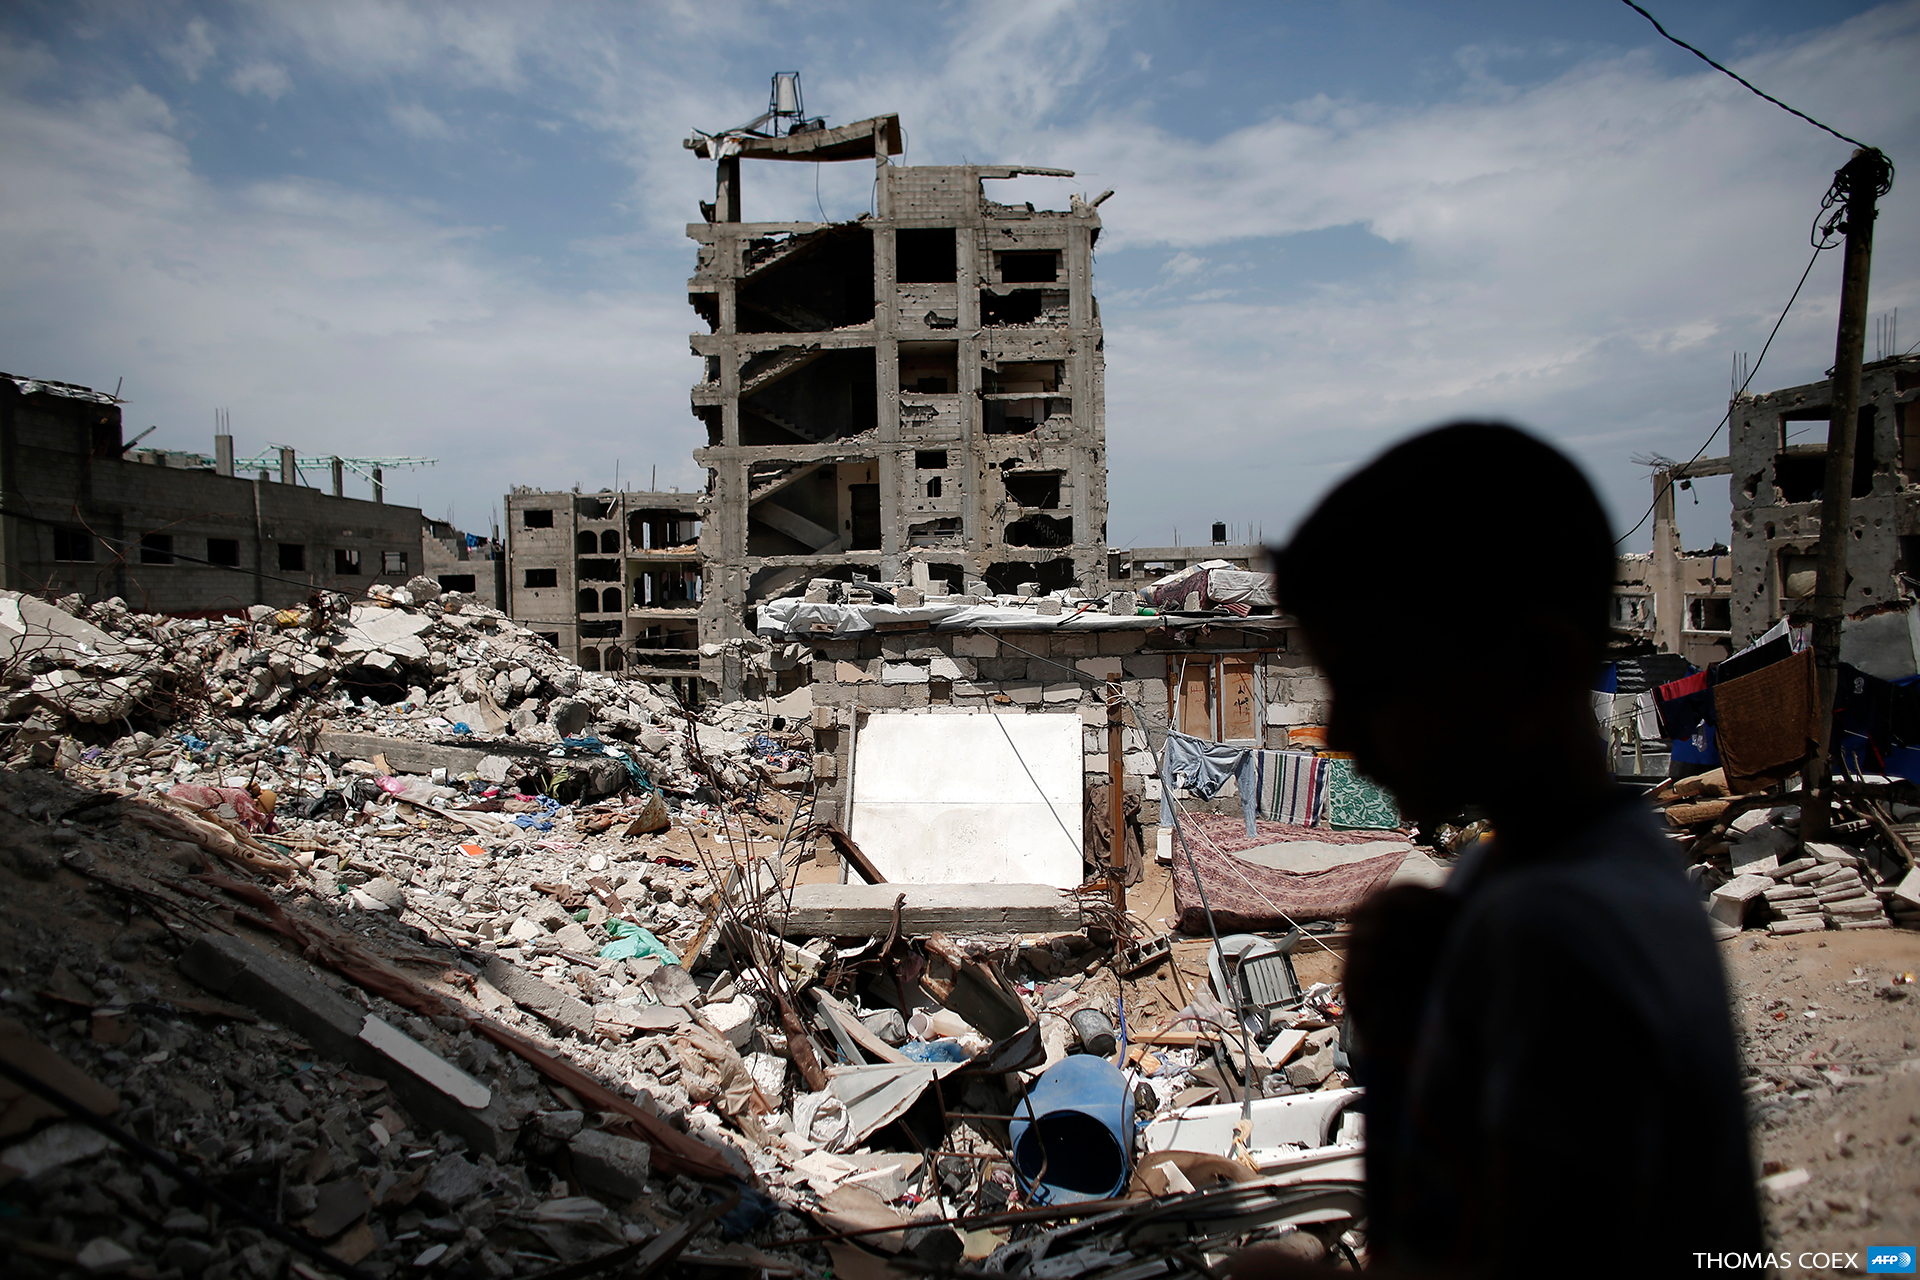 A Palestinian boy walks past his partially rebuilt home over the rubble of his familiy's former house, on May 11, 2015, which was destroyed during the 50-day Israeli military offensive in the summer of 2014, in Gaza's Shuja'iyya neighborhood. (Photo: AFP / Thomas Coex)